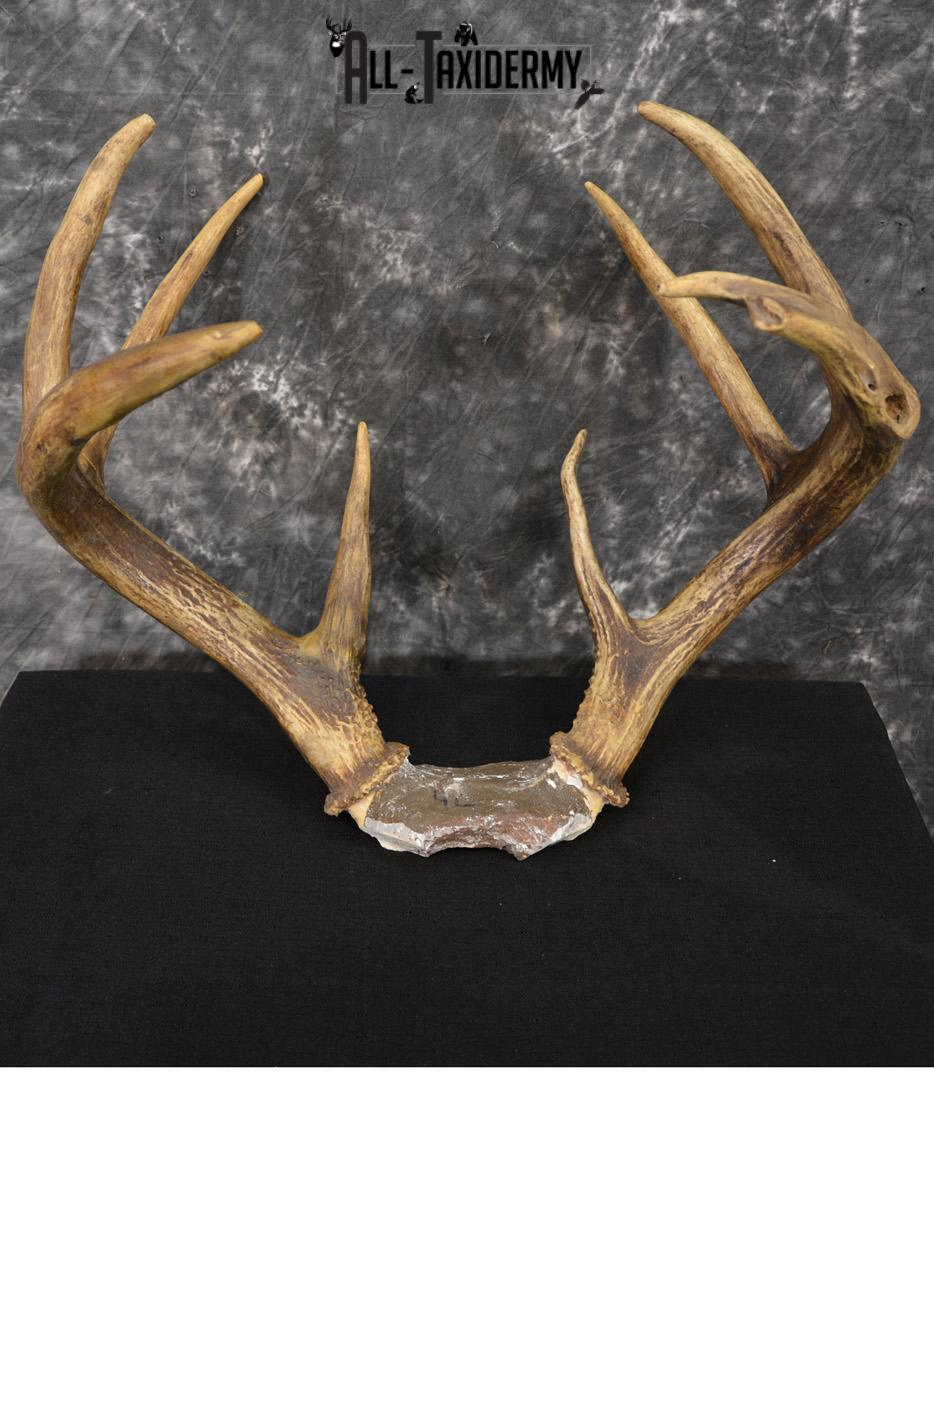 Whitetail Deer antler skull cap 8 point buck SKU 1418